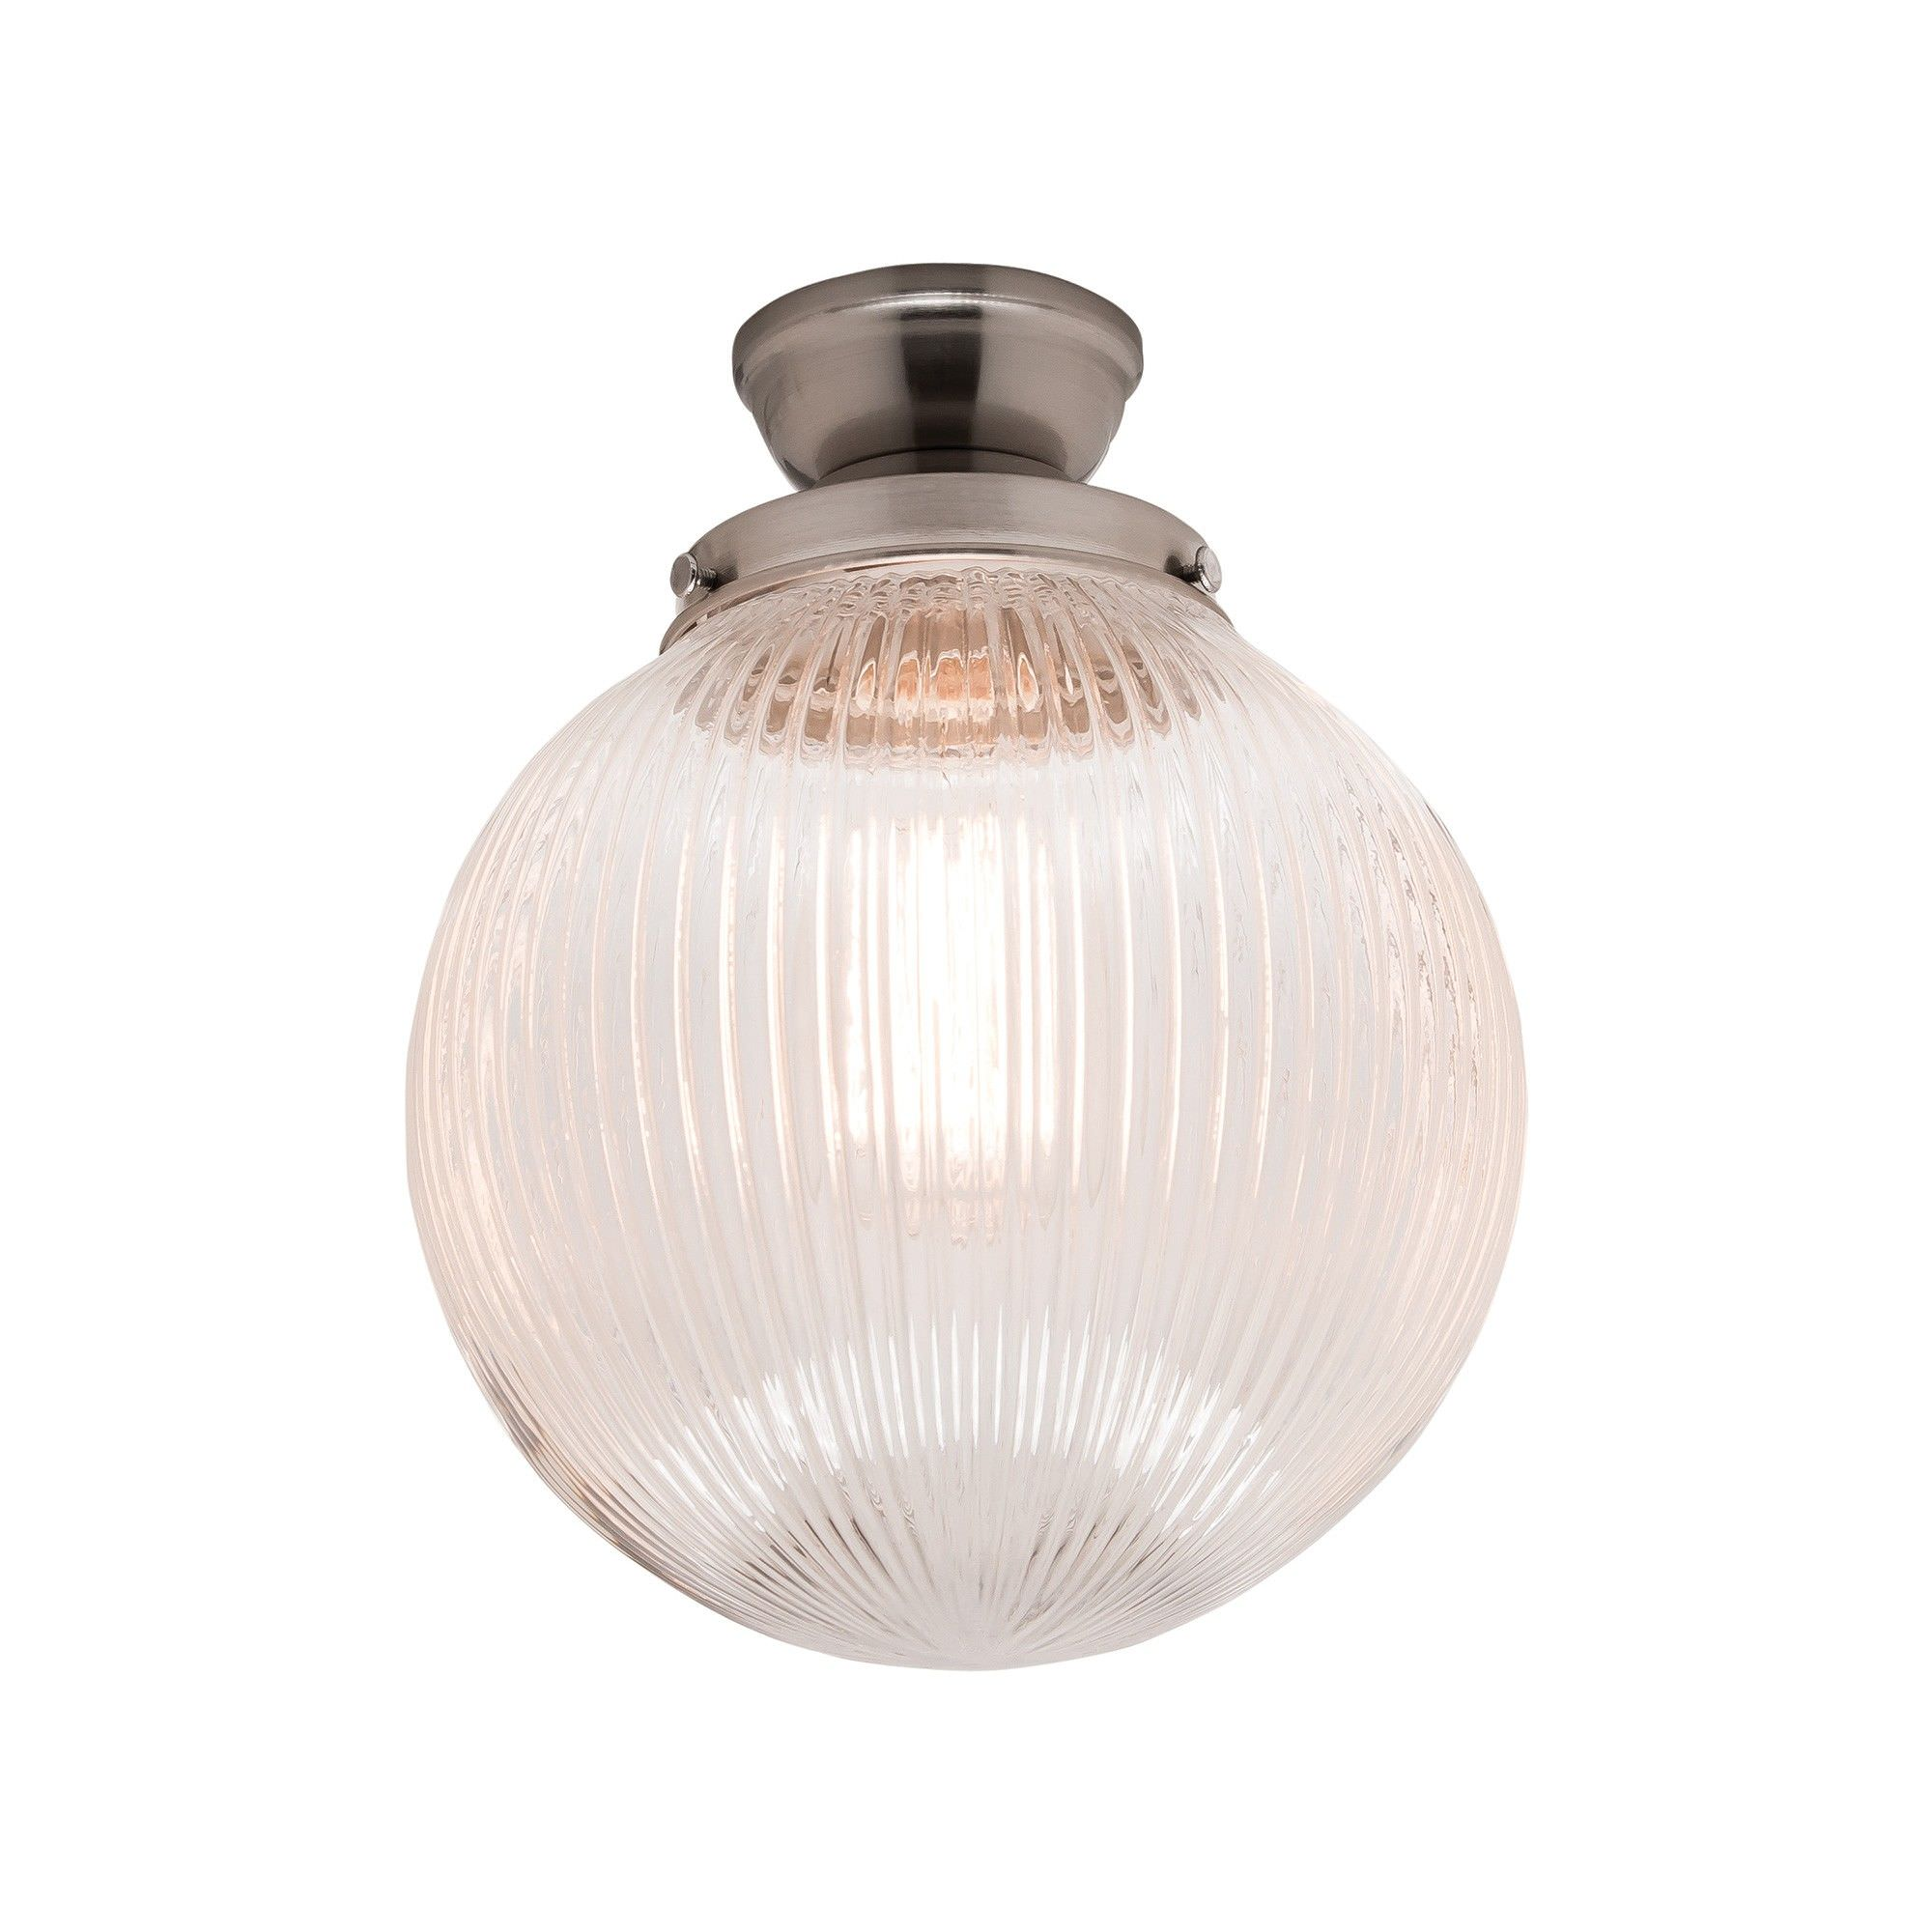 Halo DIY Ribbed Glass Batten Fix Ceiling Light Shade, Silver